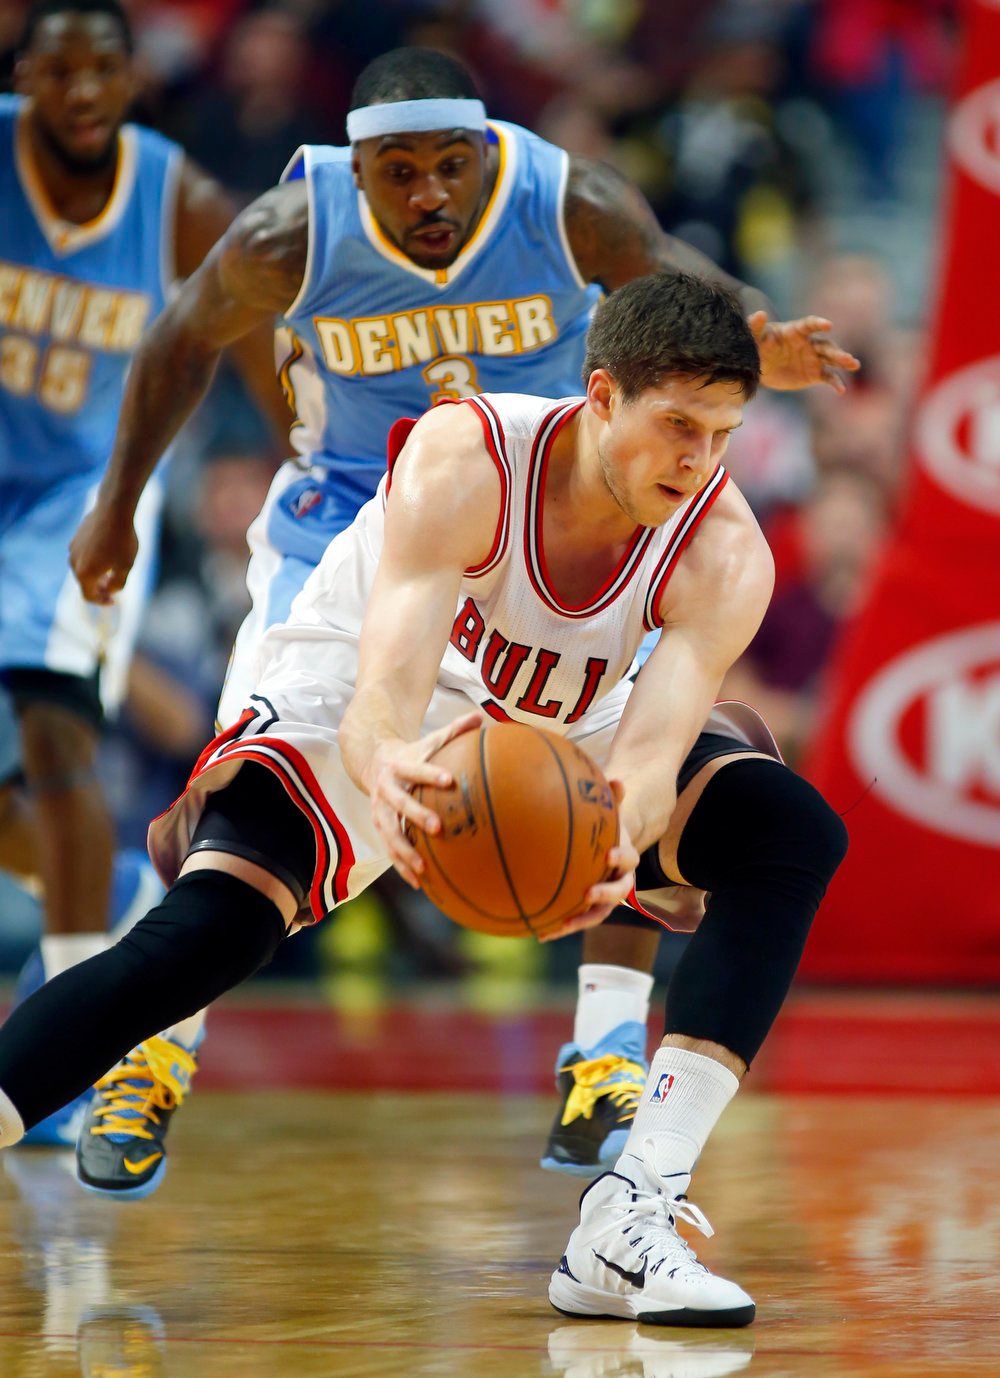 . Chicago Bulls forward Doug McDermott (3) grabs a lose ball against the Denver Nuggets during the first half of a pre-season NBA basketball game in Chicago, on Monday Oct. 13, 2014. (AP Photo/Jeff Haynes)